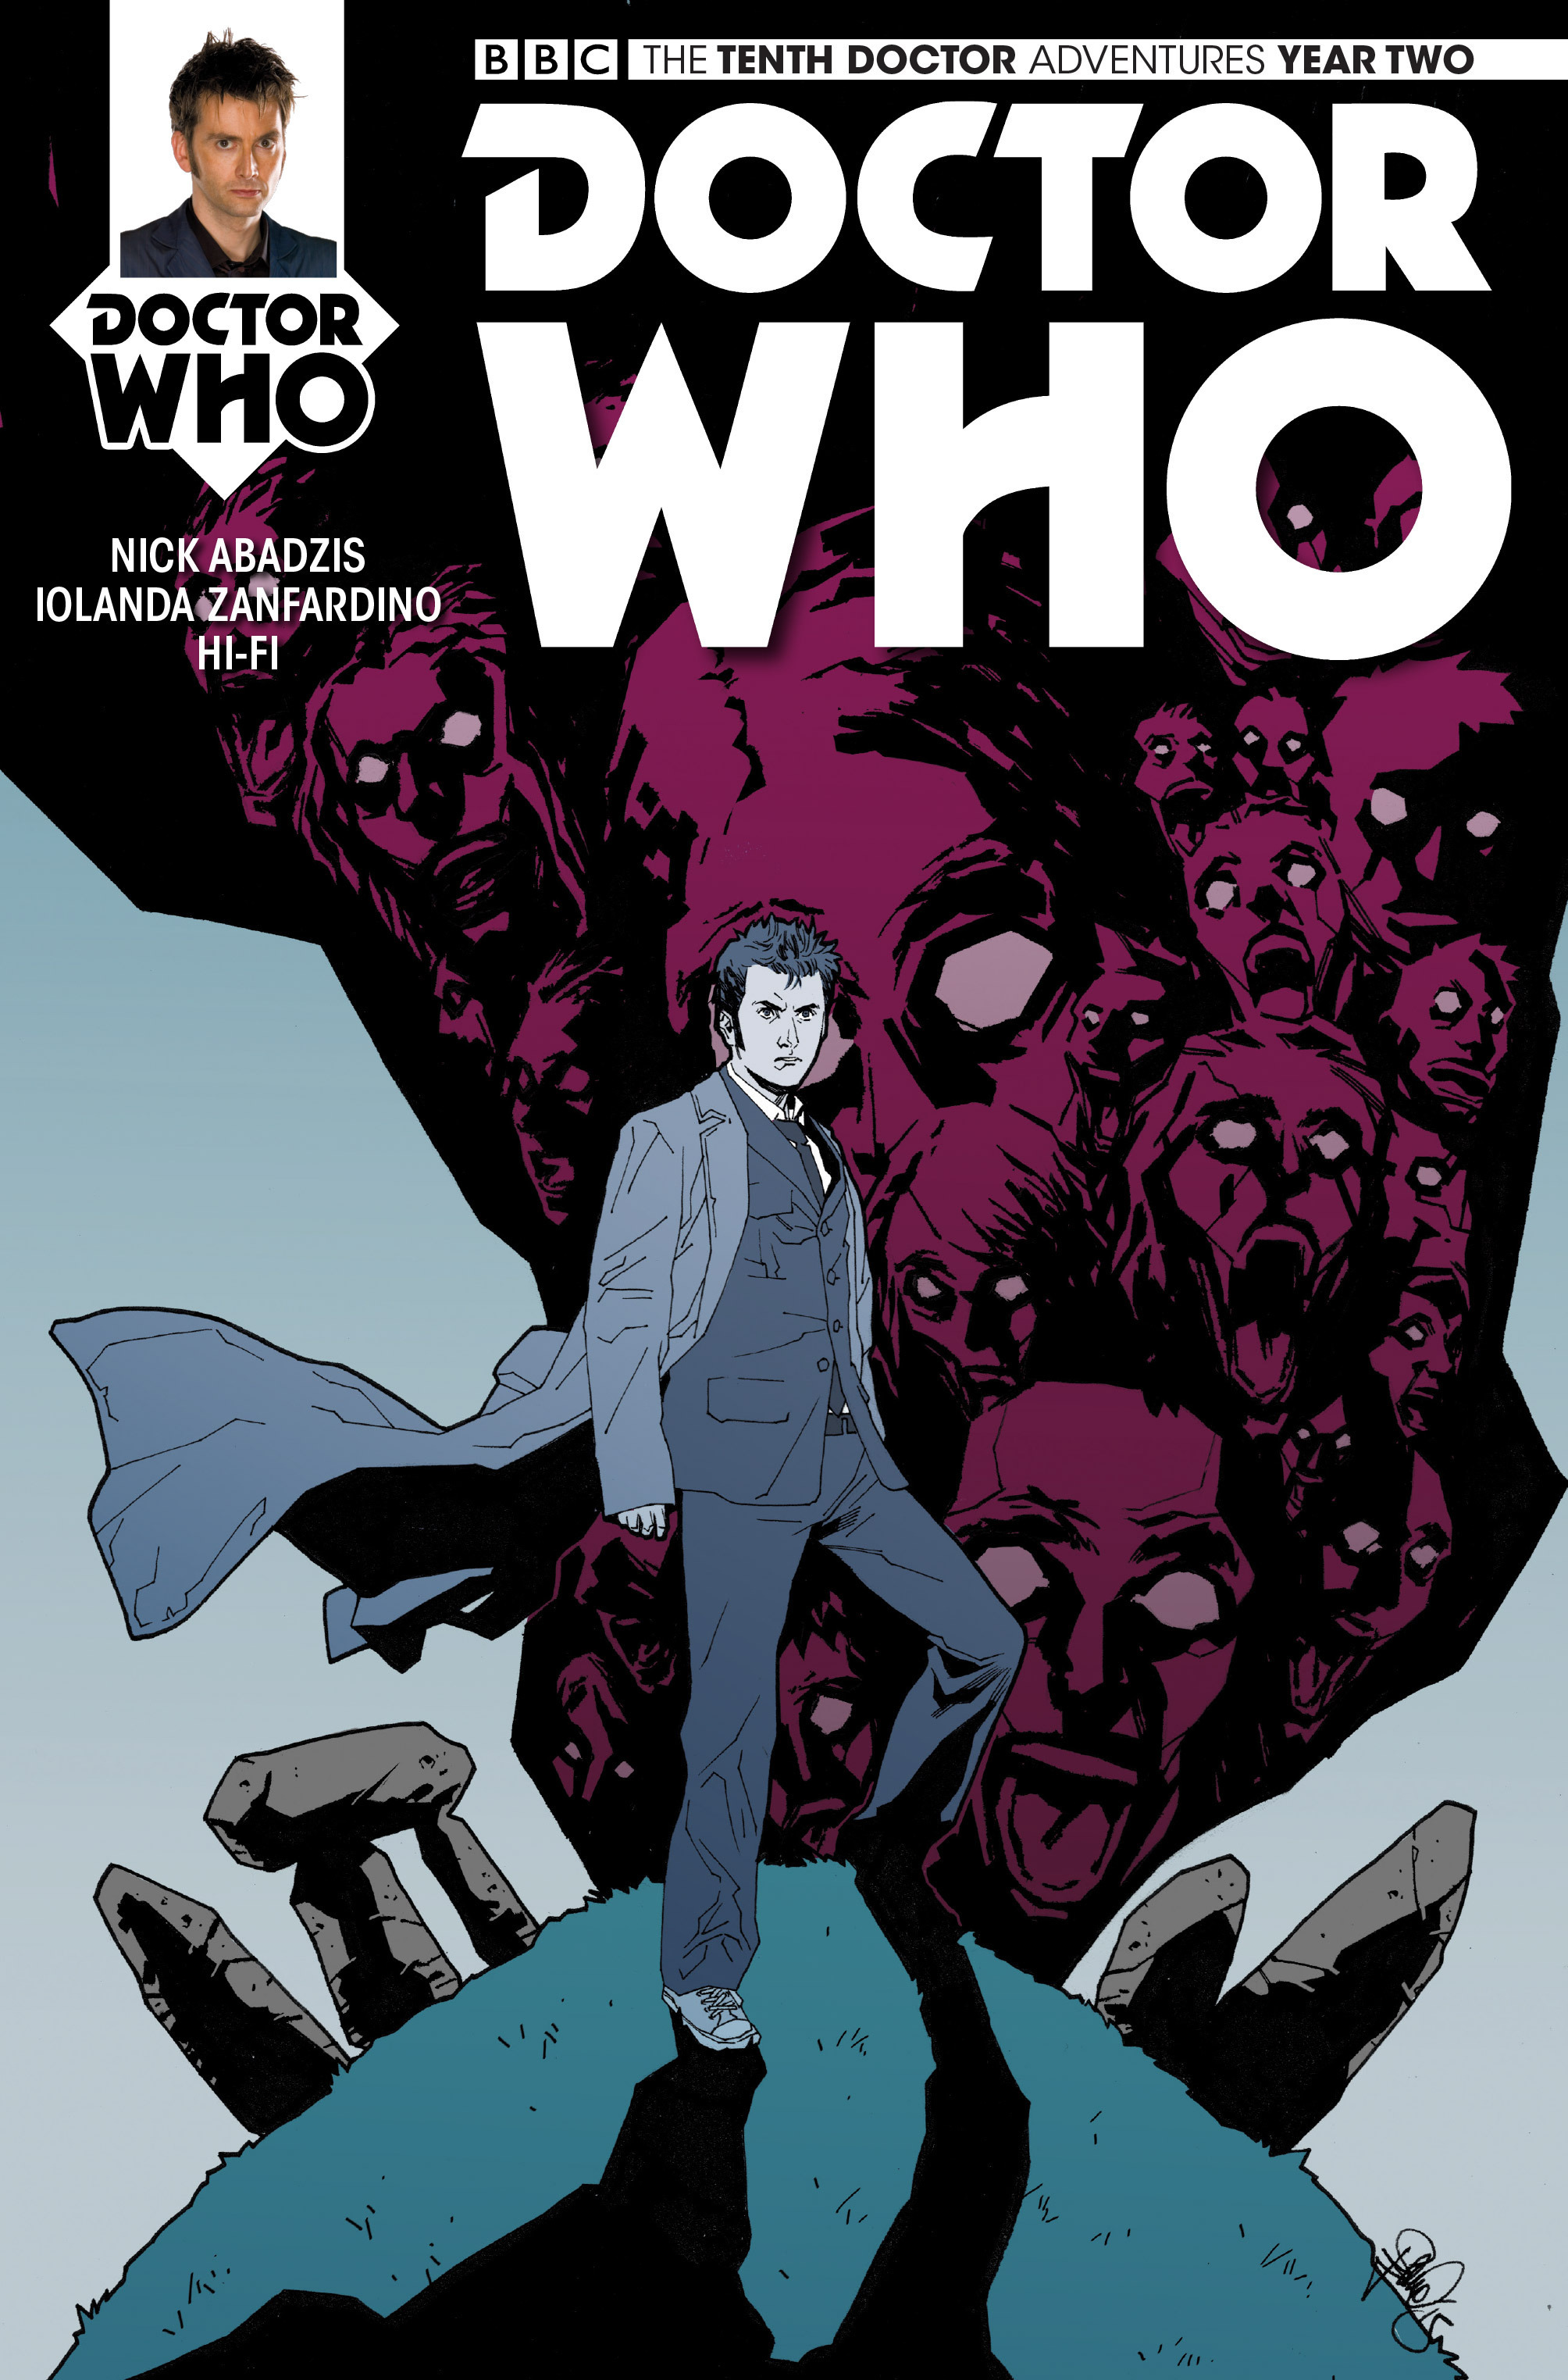 Doctor Who: The Tenth Doctor Year Two 9 Page 1